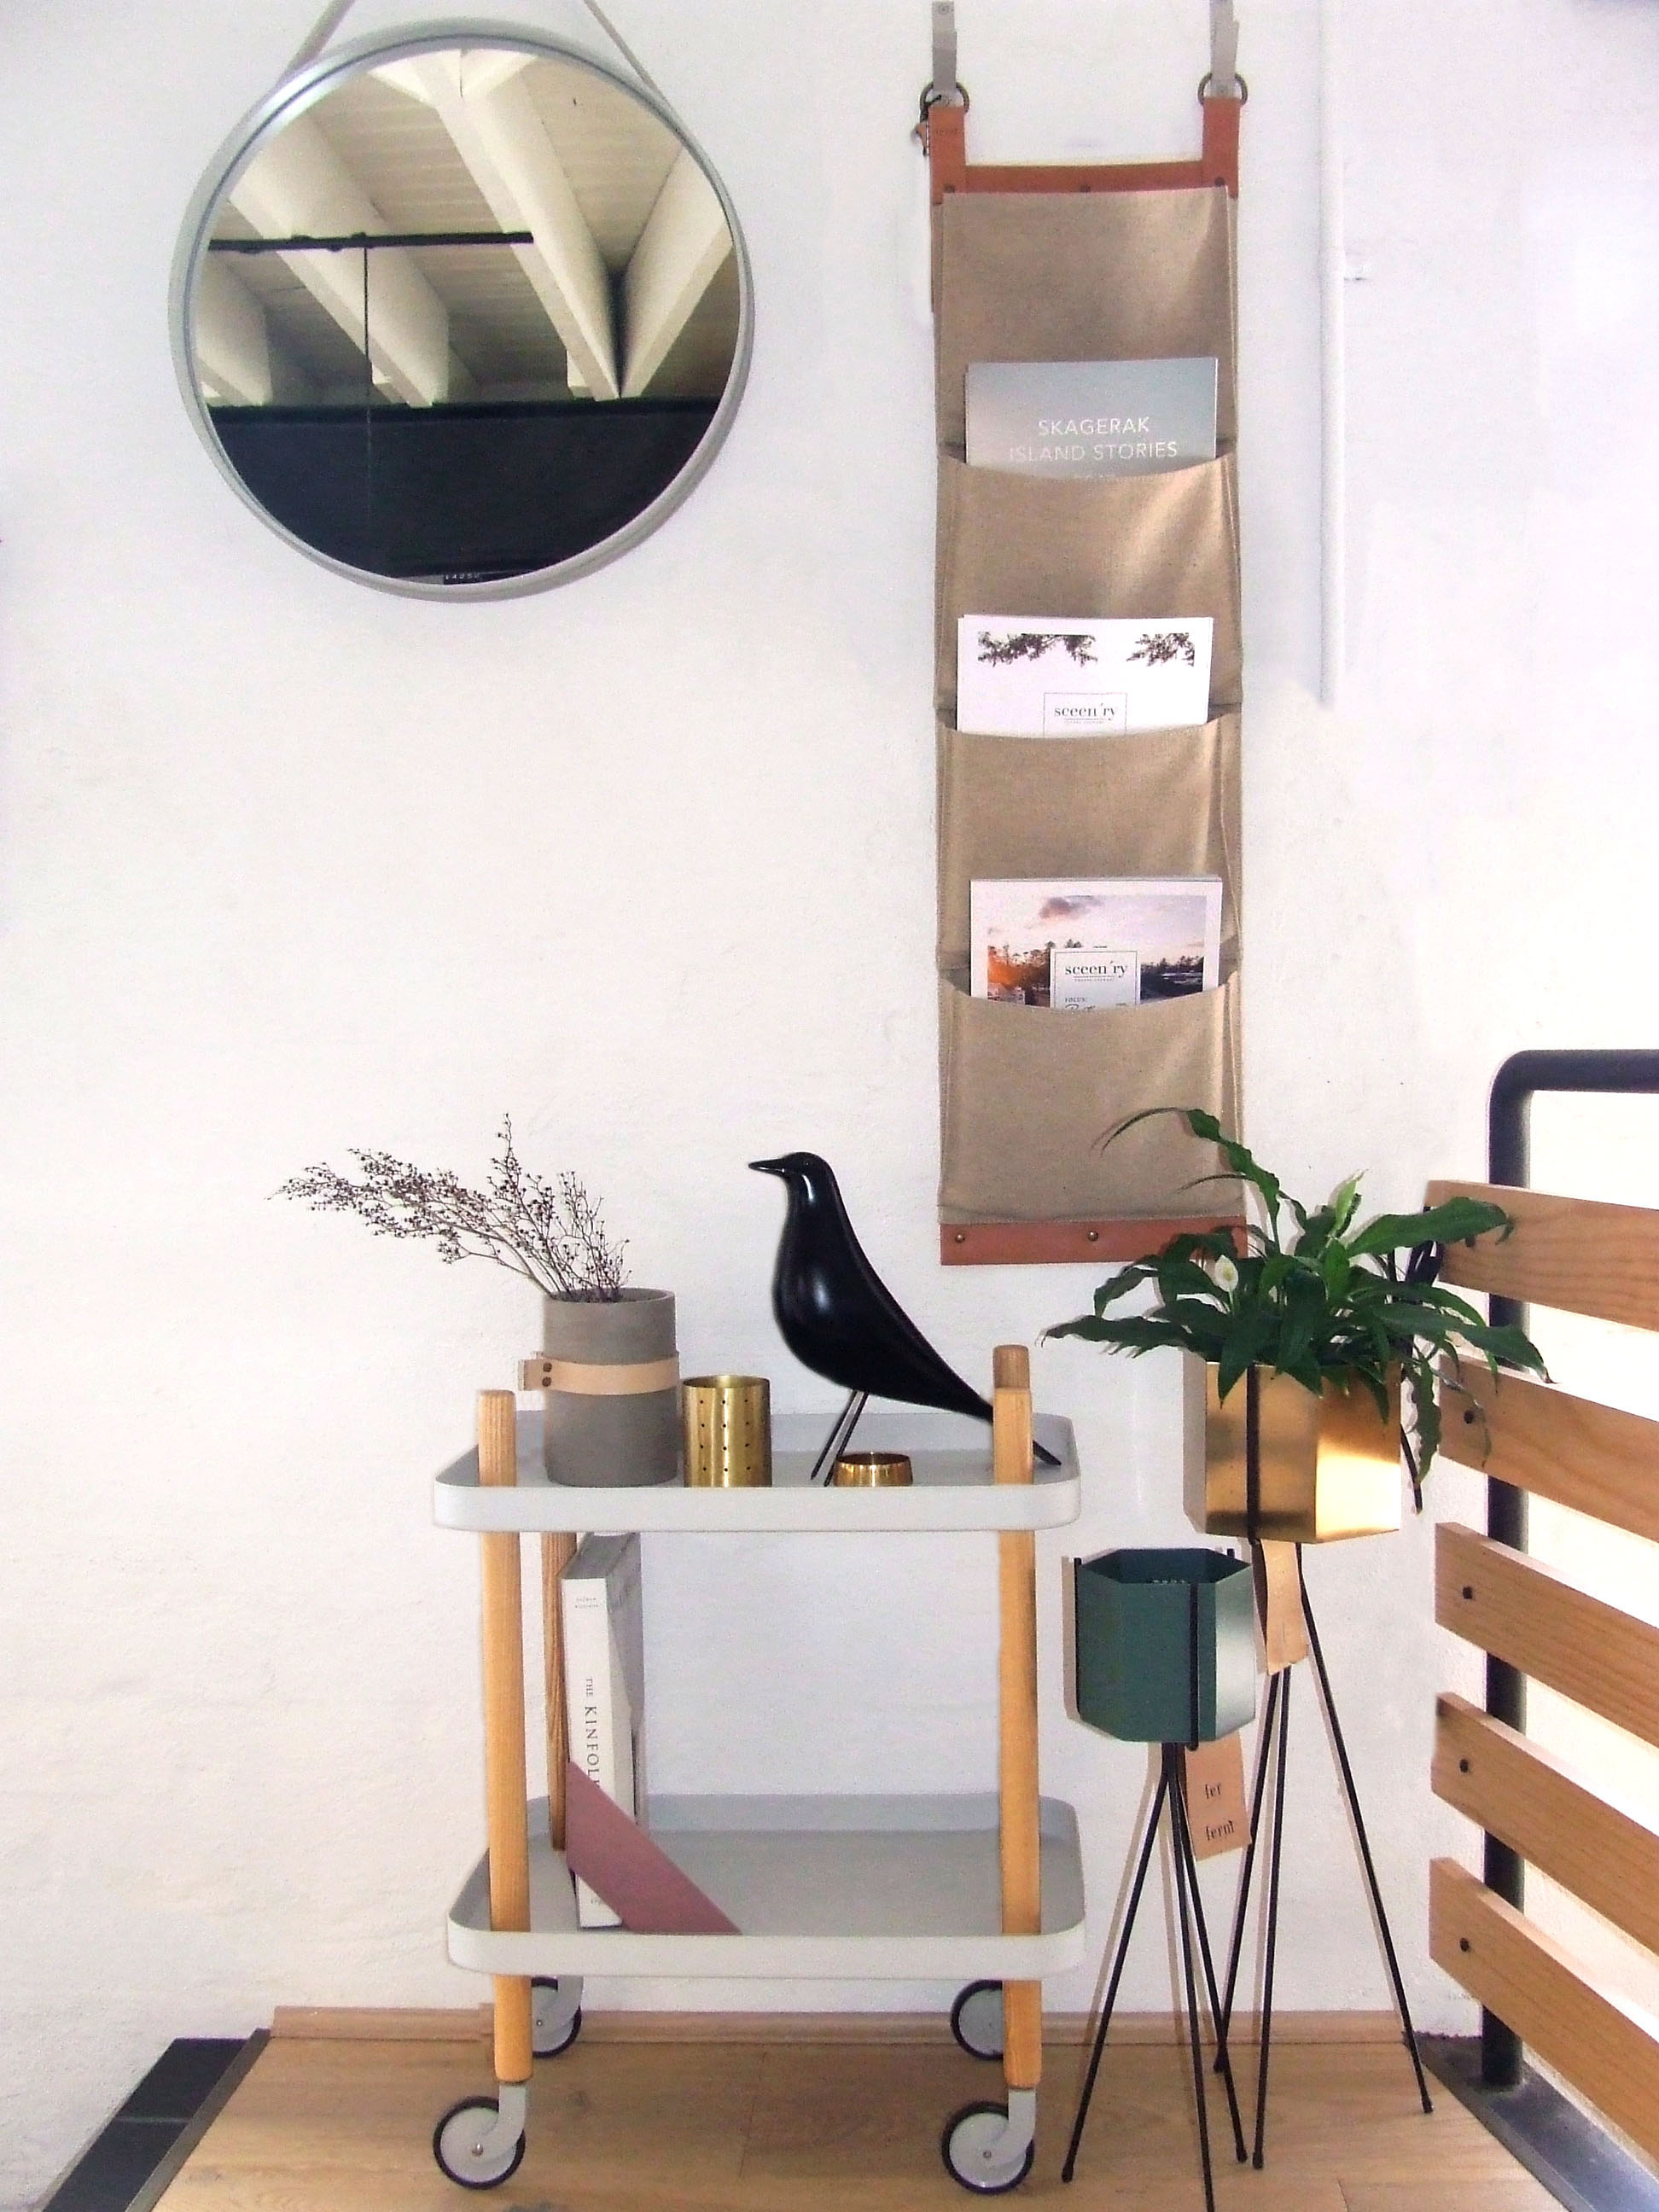 Norman Copenhangen Block Table  //  HAY Strap Mirror  //  Zakkia Holey Vessel     //  Vitra Eames House Bird  //